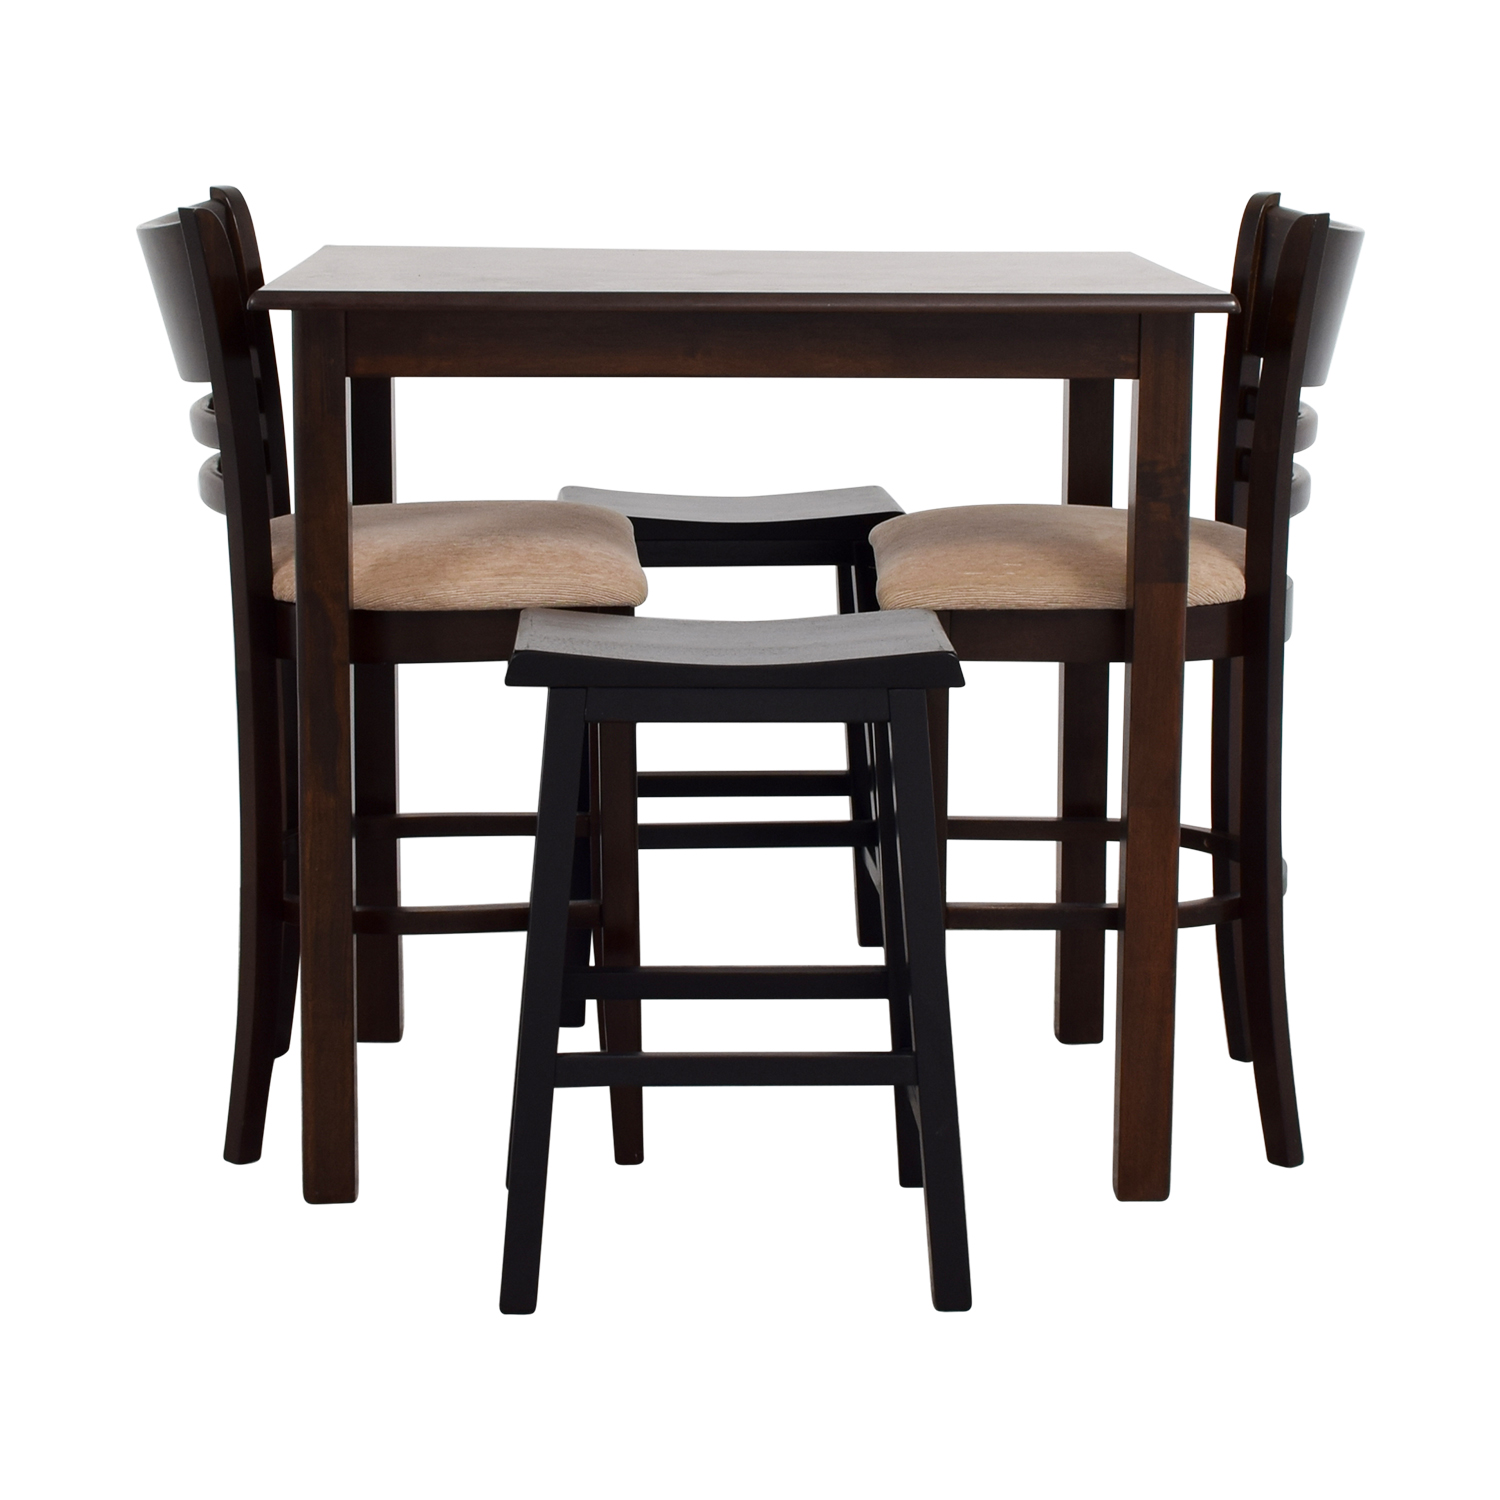 Simple Bar Table With Two Chairs And Stools Dimensions